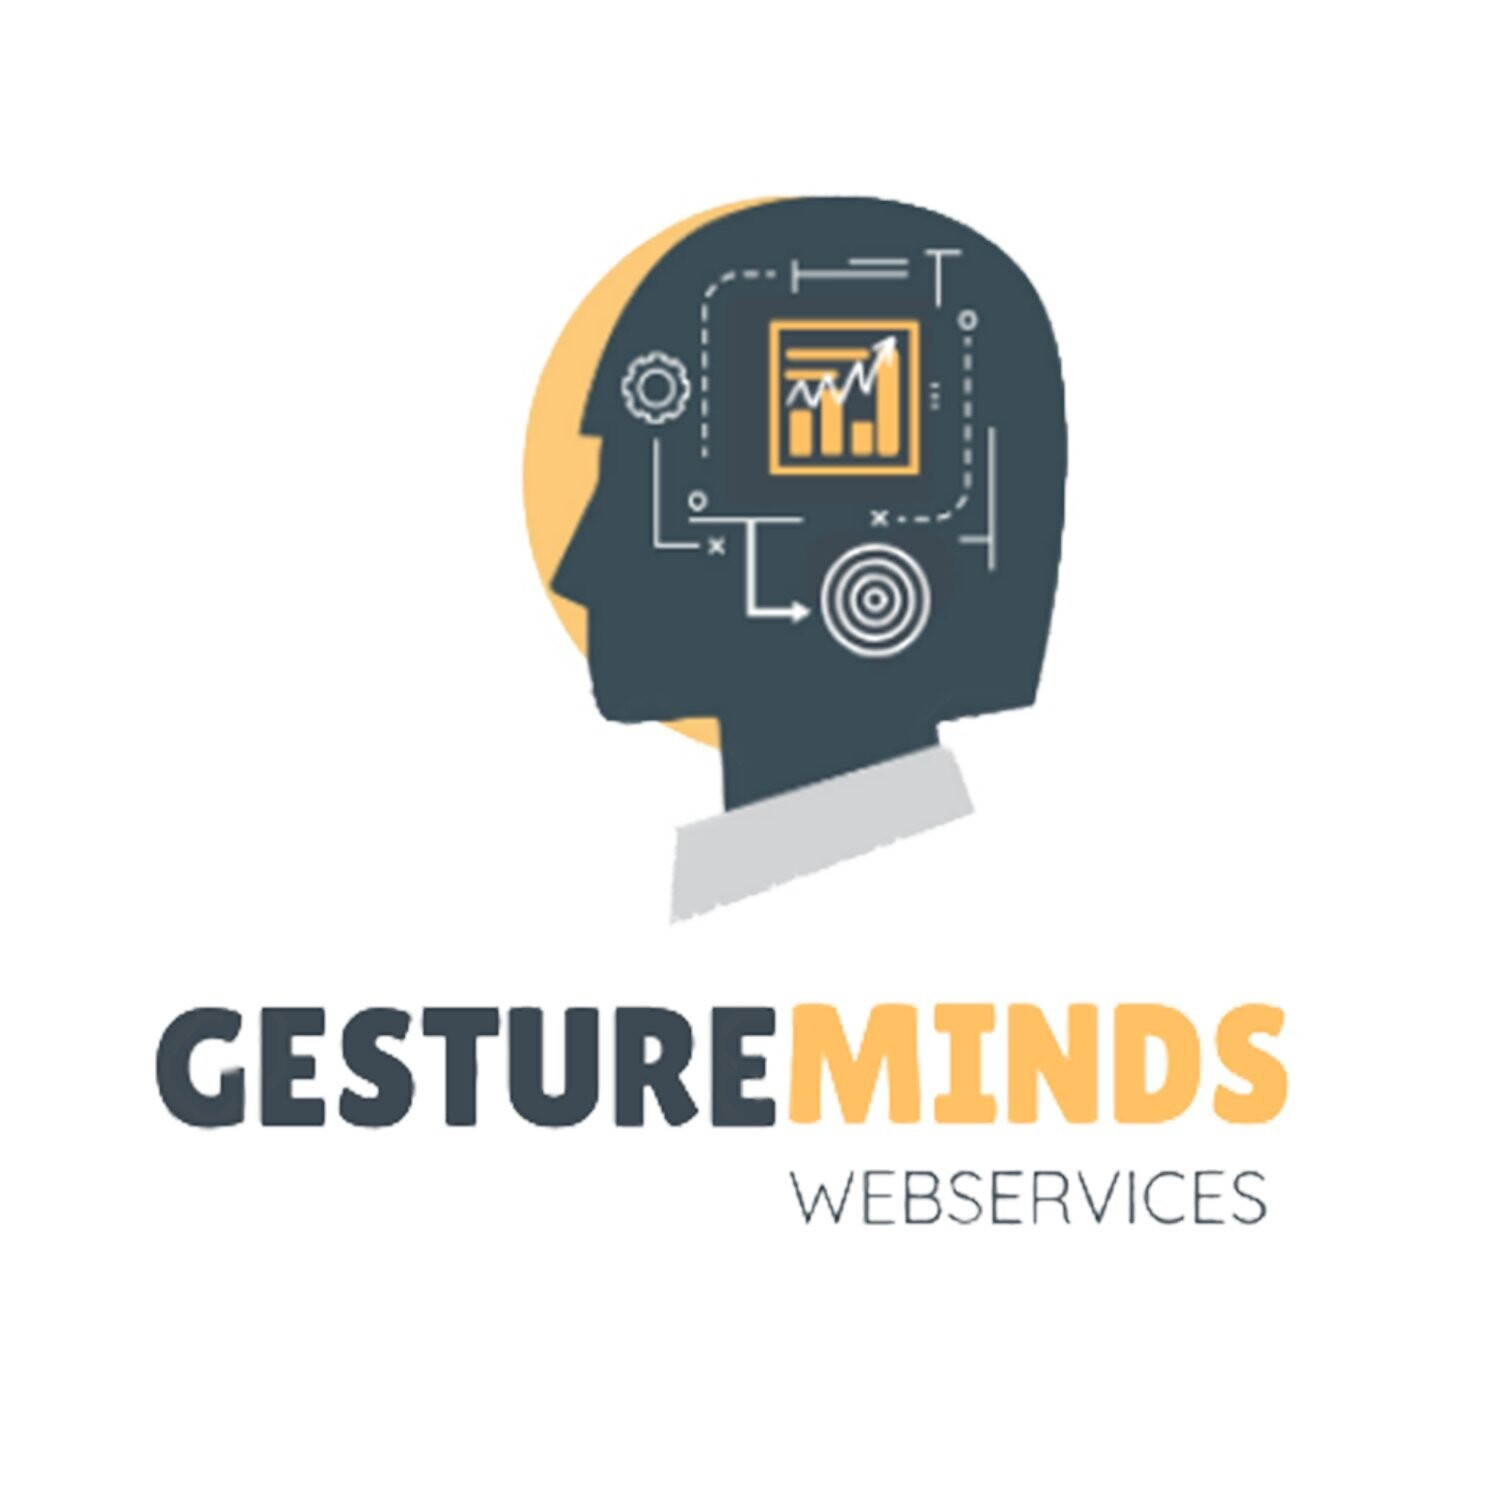 Gestureminds Webservices LLP